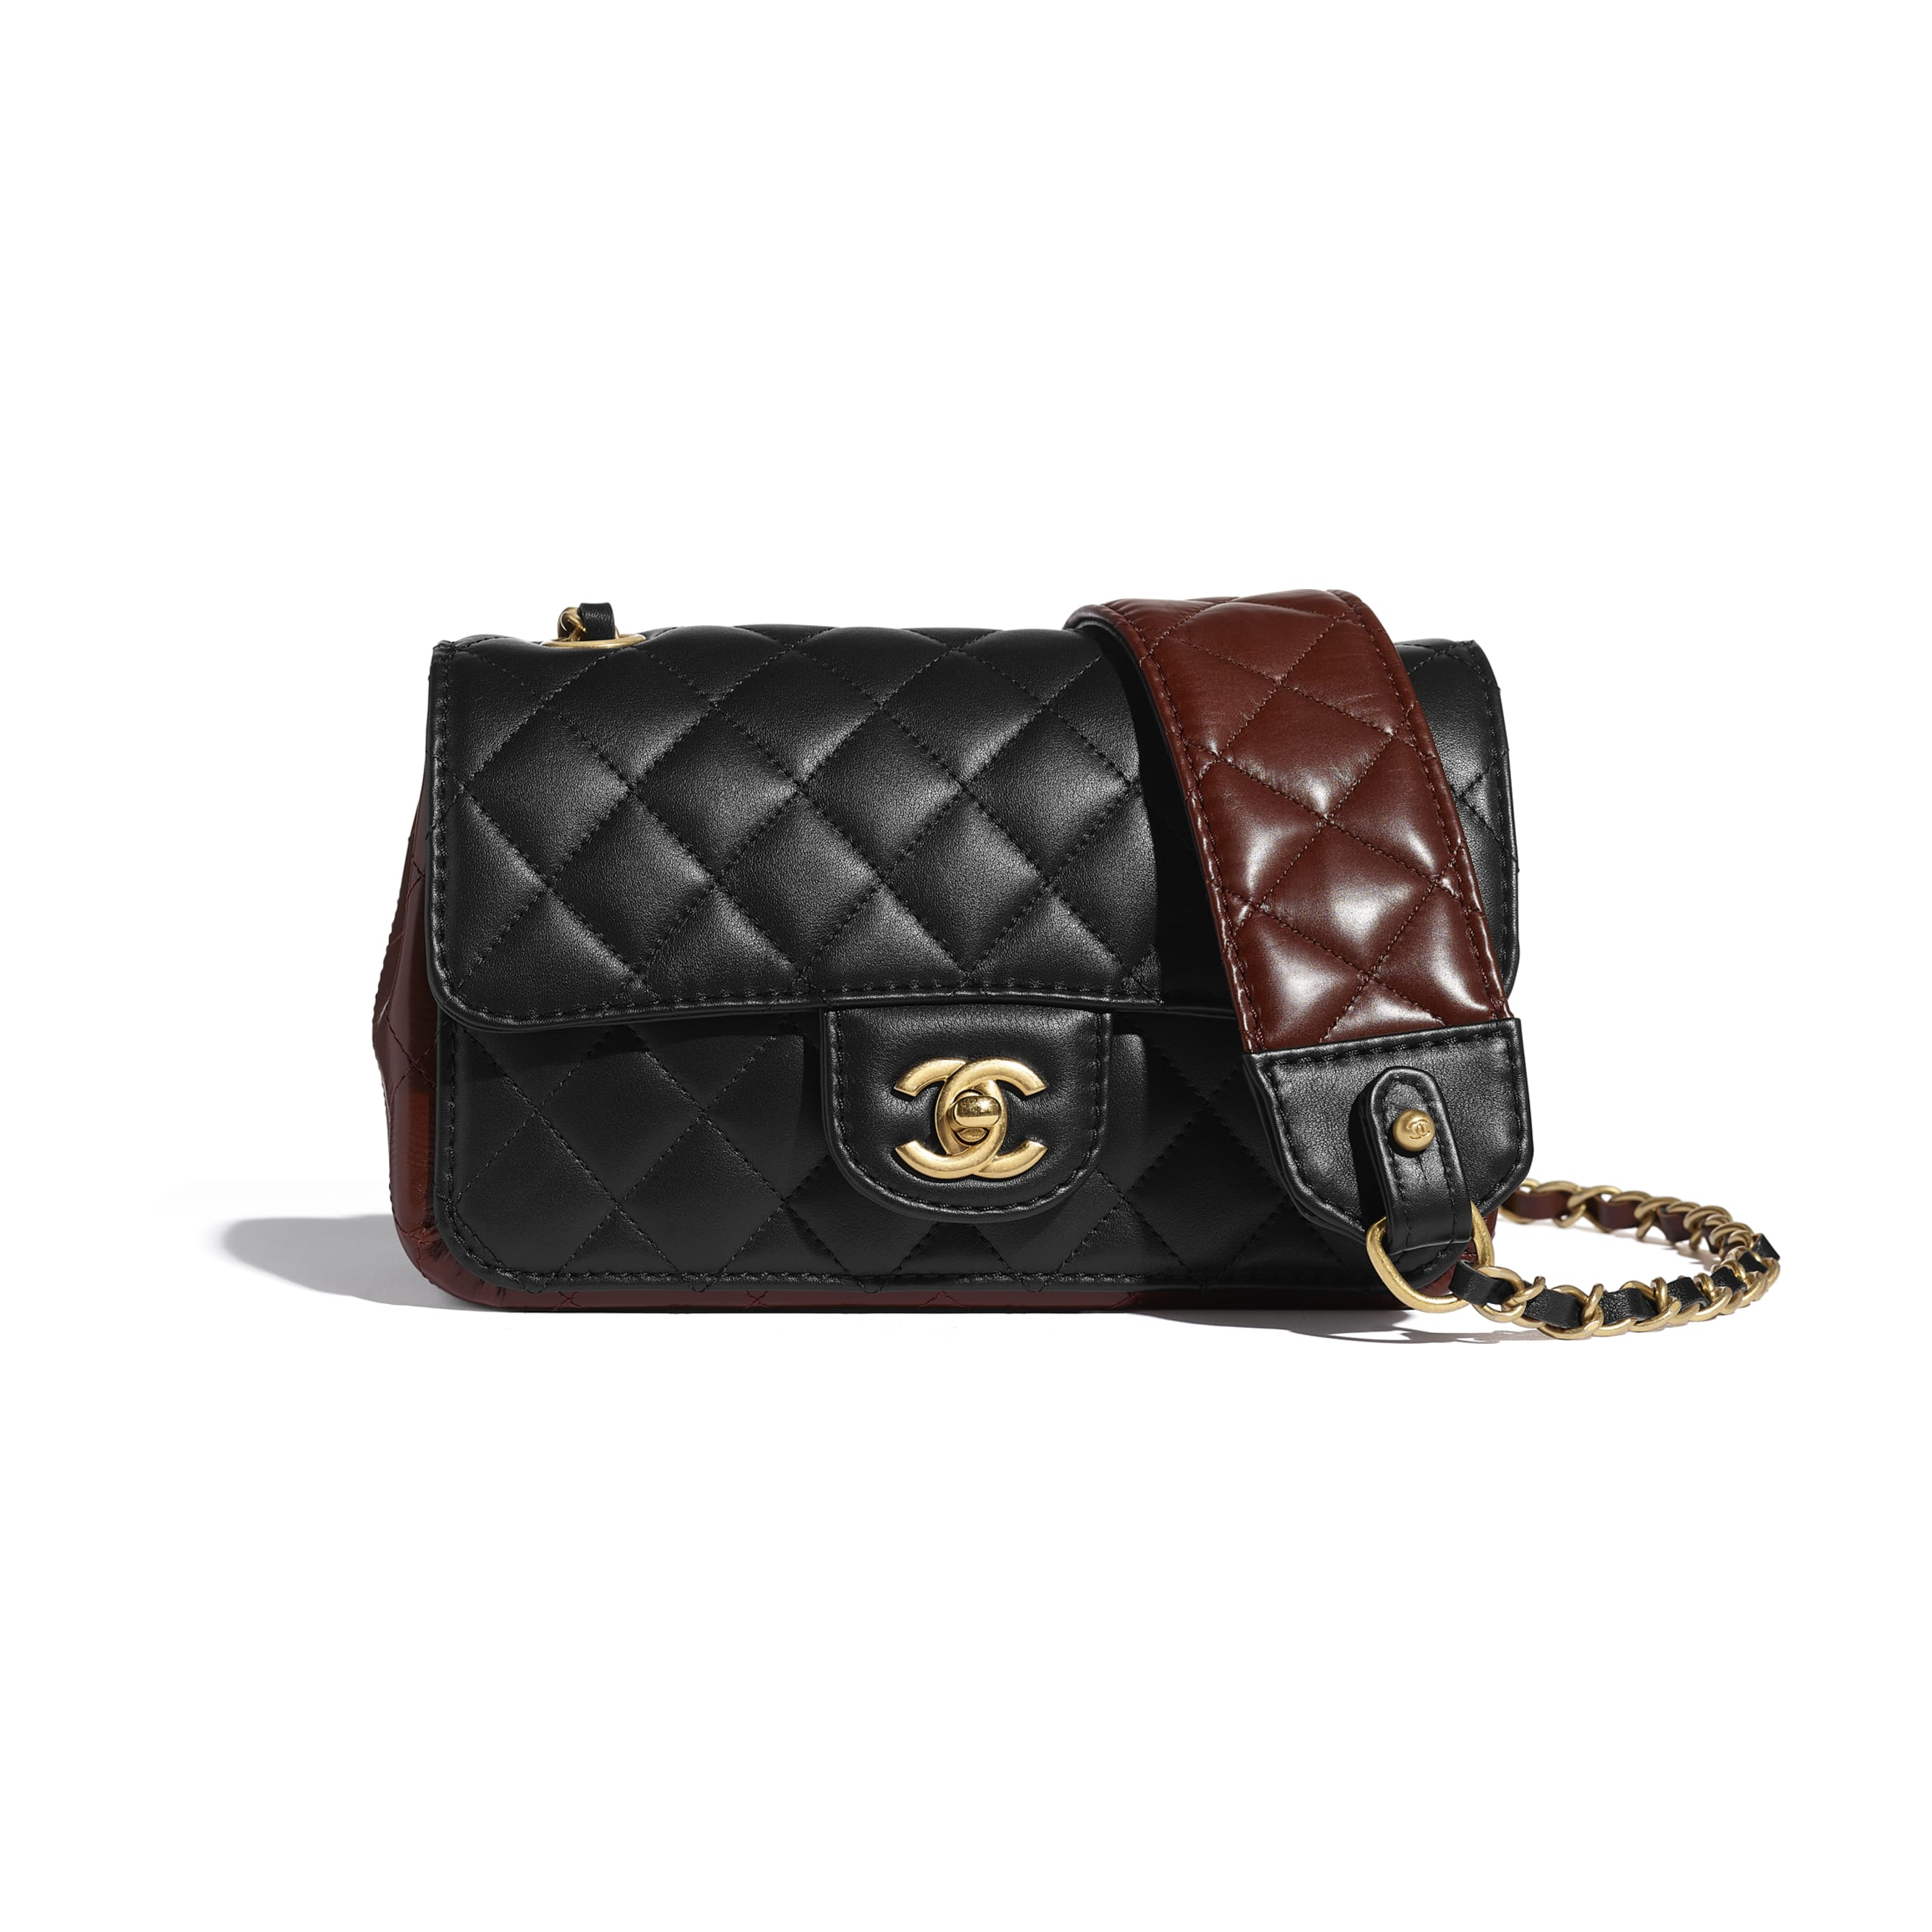 Small Flap Bag - Black & Brown - Calfskin & Gold-Tone Metal - CHANEL - Default view - see standard sized version